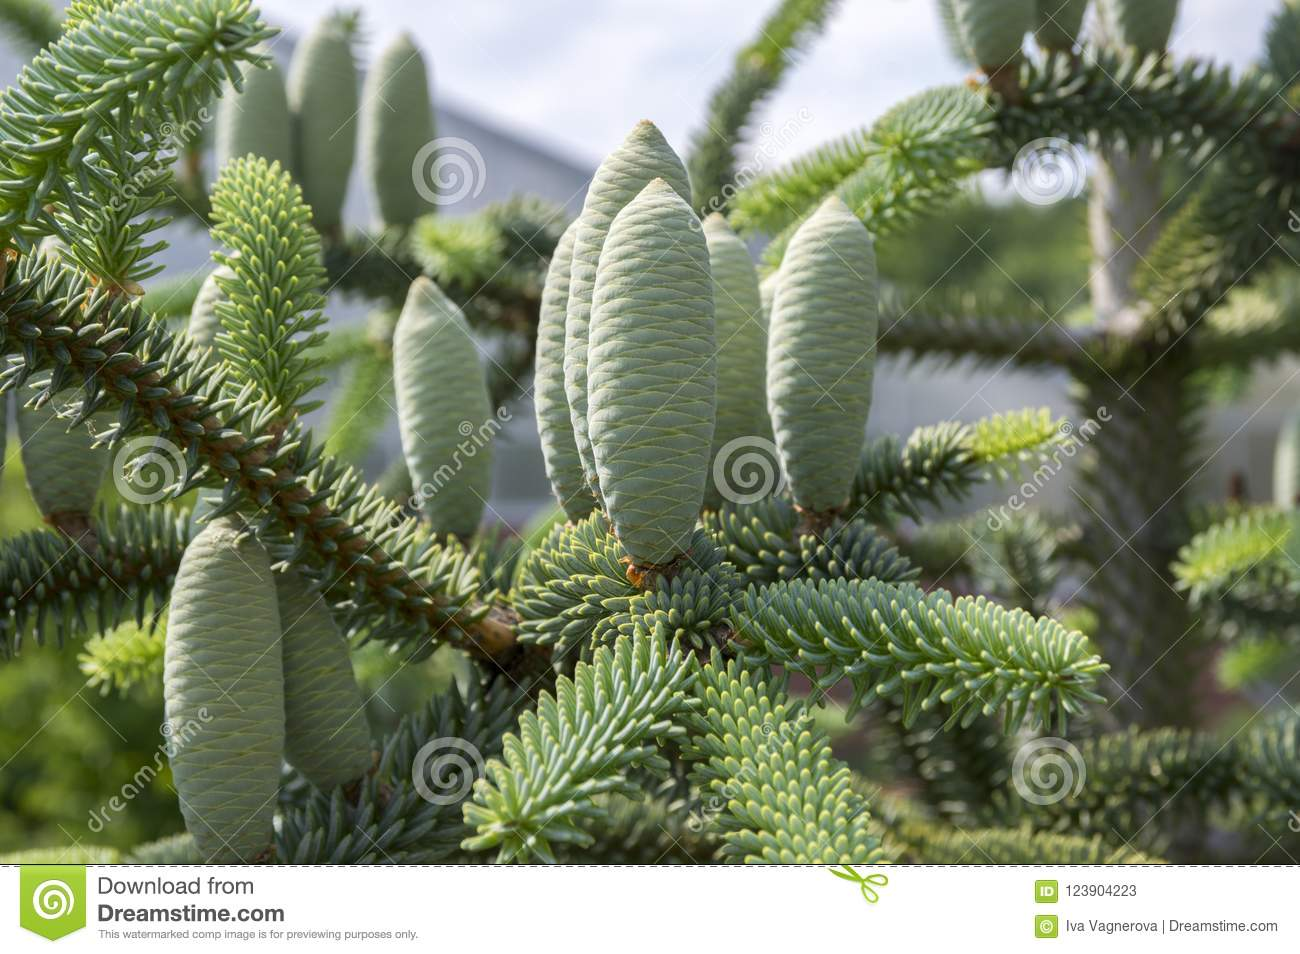 Abies Pinsapo Coniferous Tree Branches Full Of Needles And With